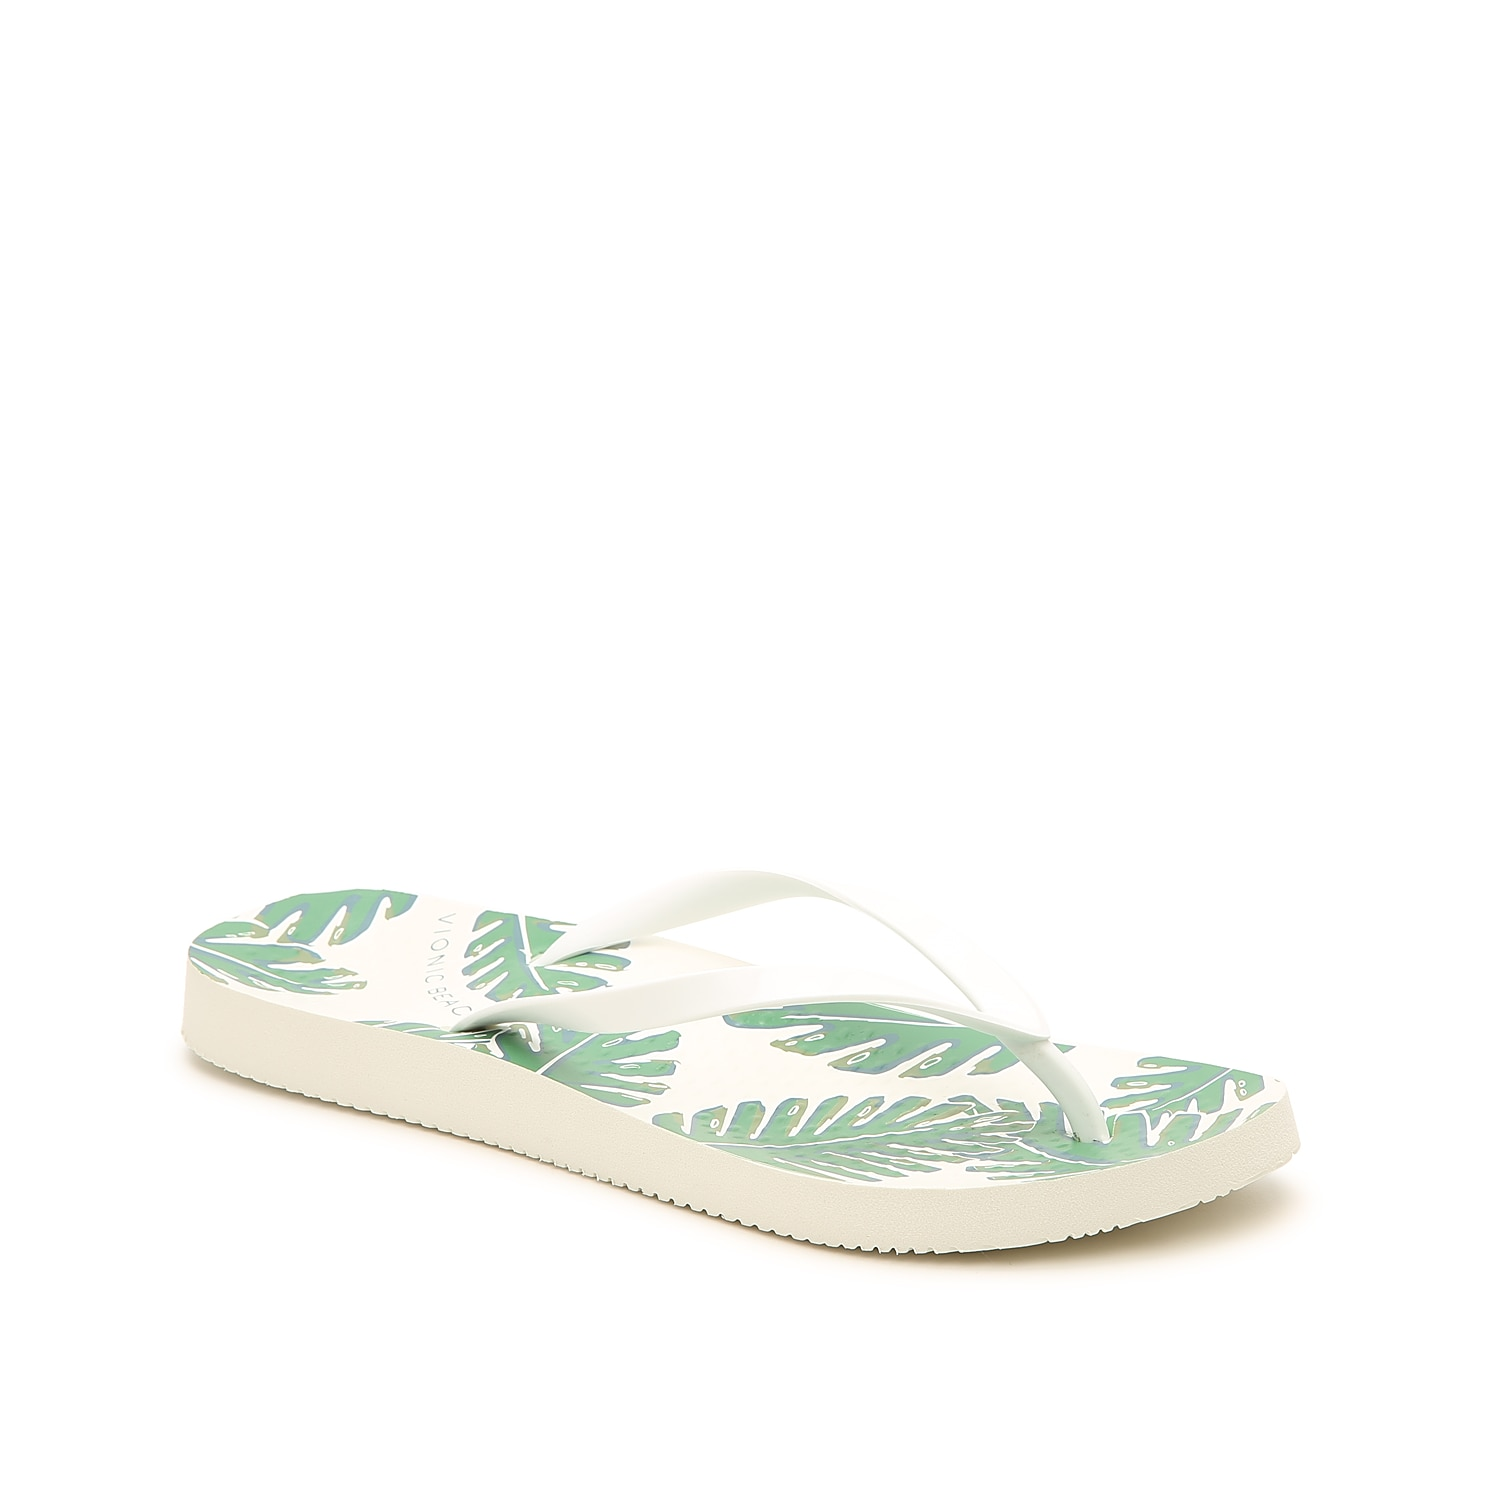 Slide into a flip flop with the support you need by wearing the Noosa from Vionic. This thong sandal features a contoured footbed and thick EVA midsole daylong comfort.